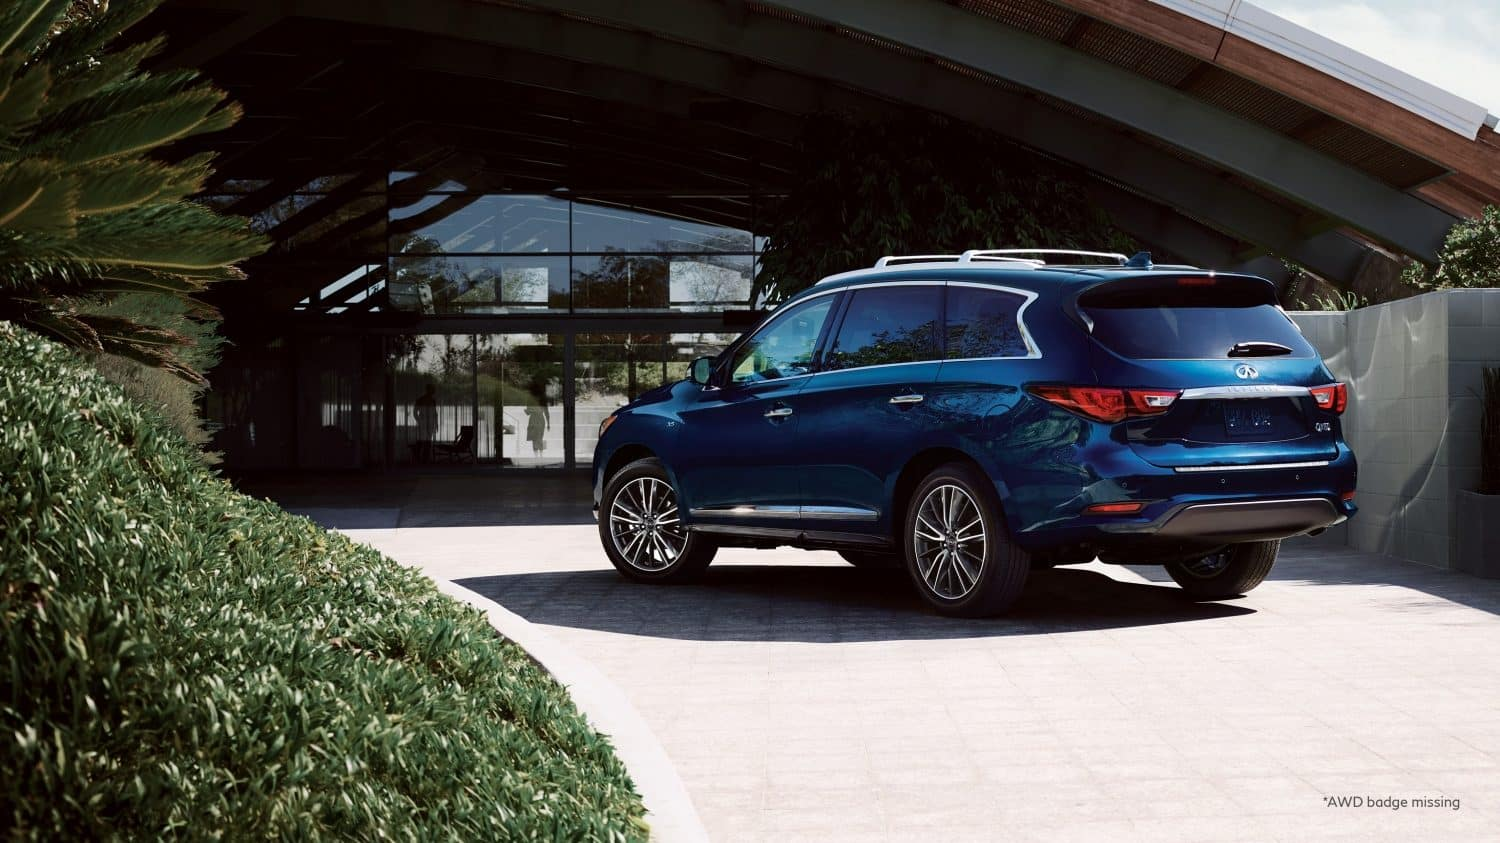 Buick Enclave Vs Infiniti Qx60 The Other Luxury Crossovers